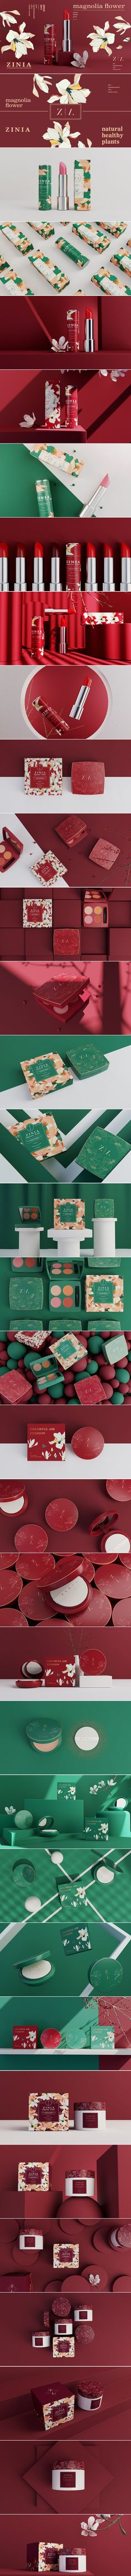 ZINIA Cosmetics Branding and Packaging by Hellocean | Fivestar Branding Agency – Design and Branding Agency & Curated Inspiration Gallery  #cosmetics #packaging #packagedesign #packaginginspiration #design #branding #behance #dribbble #pinterest #fivestarbranding